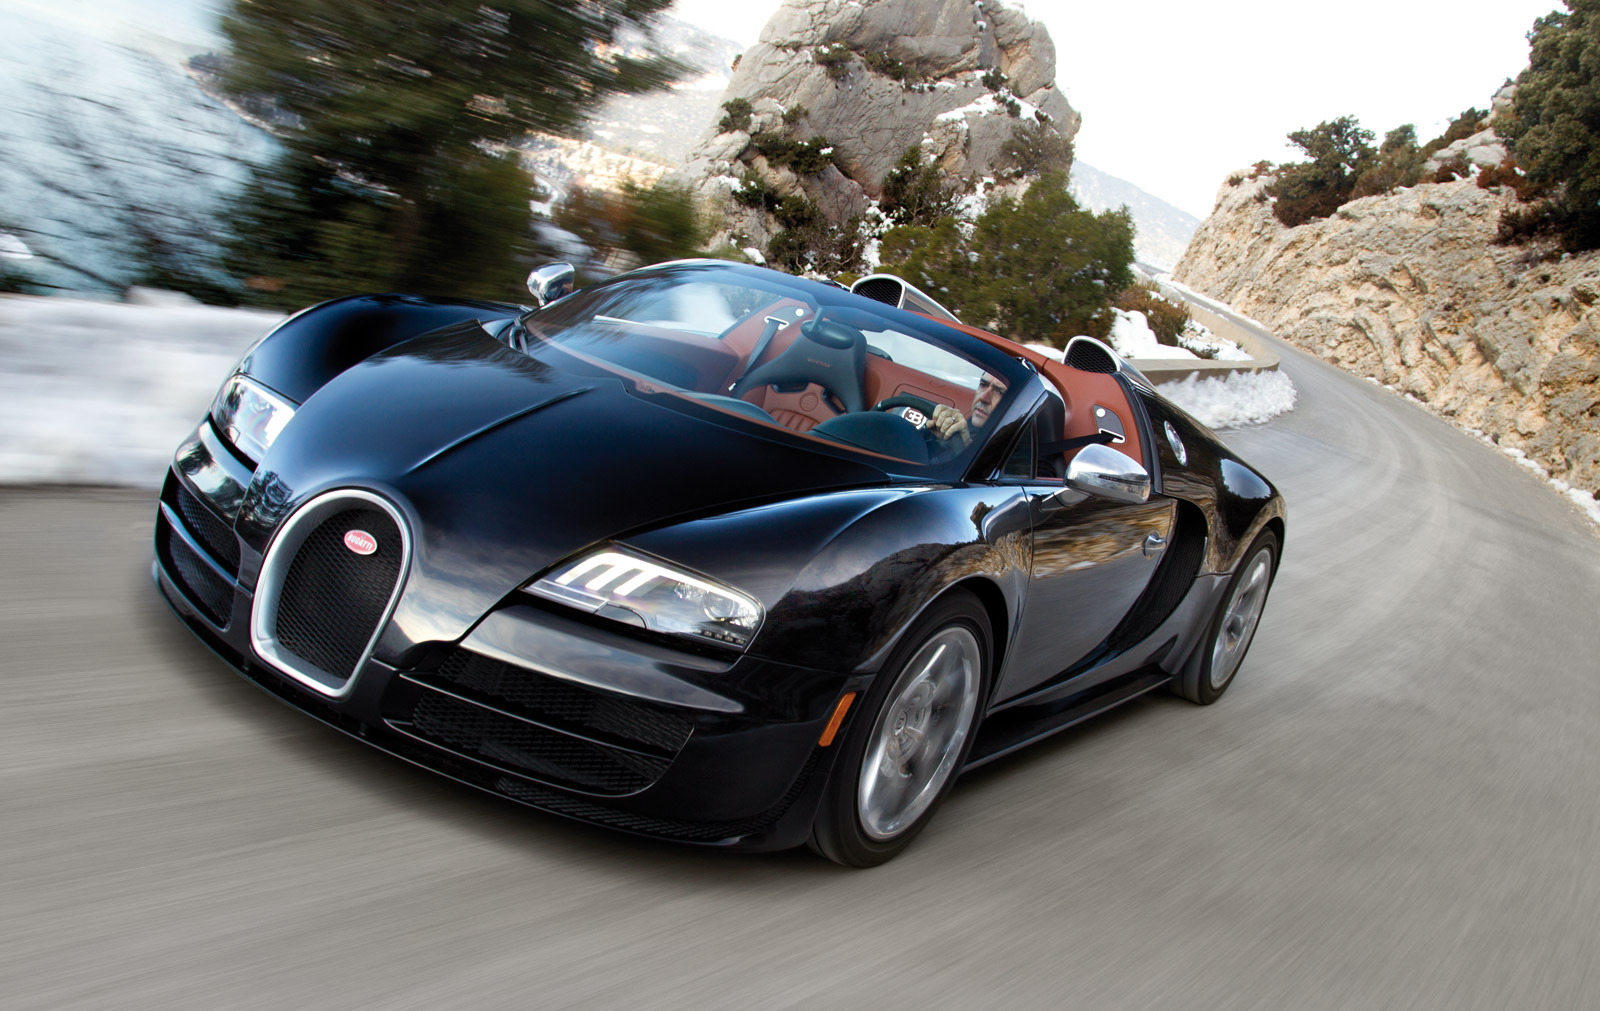 2018 Bugatti Veyron Grand Sport photo - 1